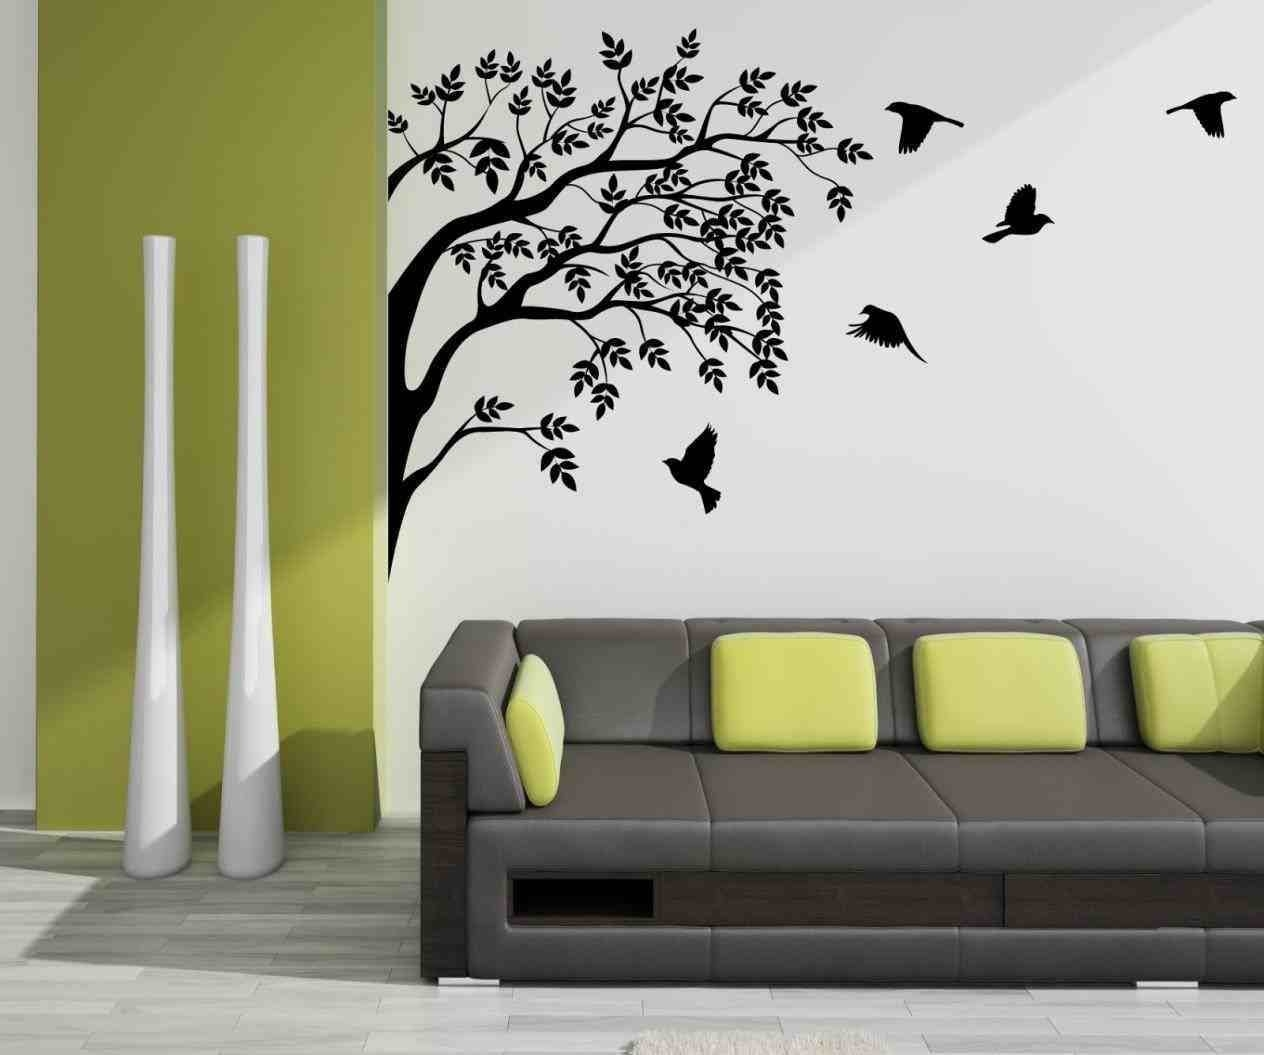 Fascinating Creative Wall Painting Ideas For Living Room U within Creative Wall Painting Ideas For Living Room 30073